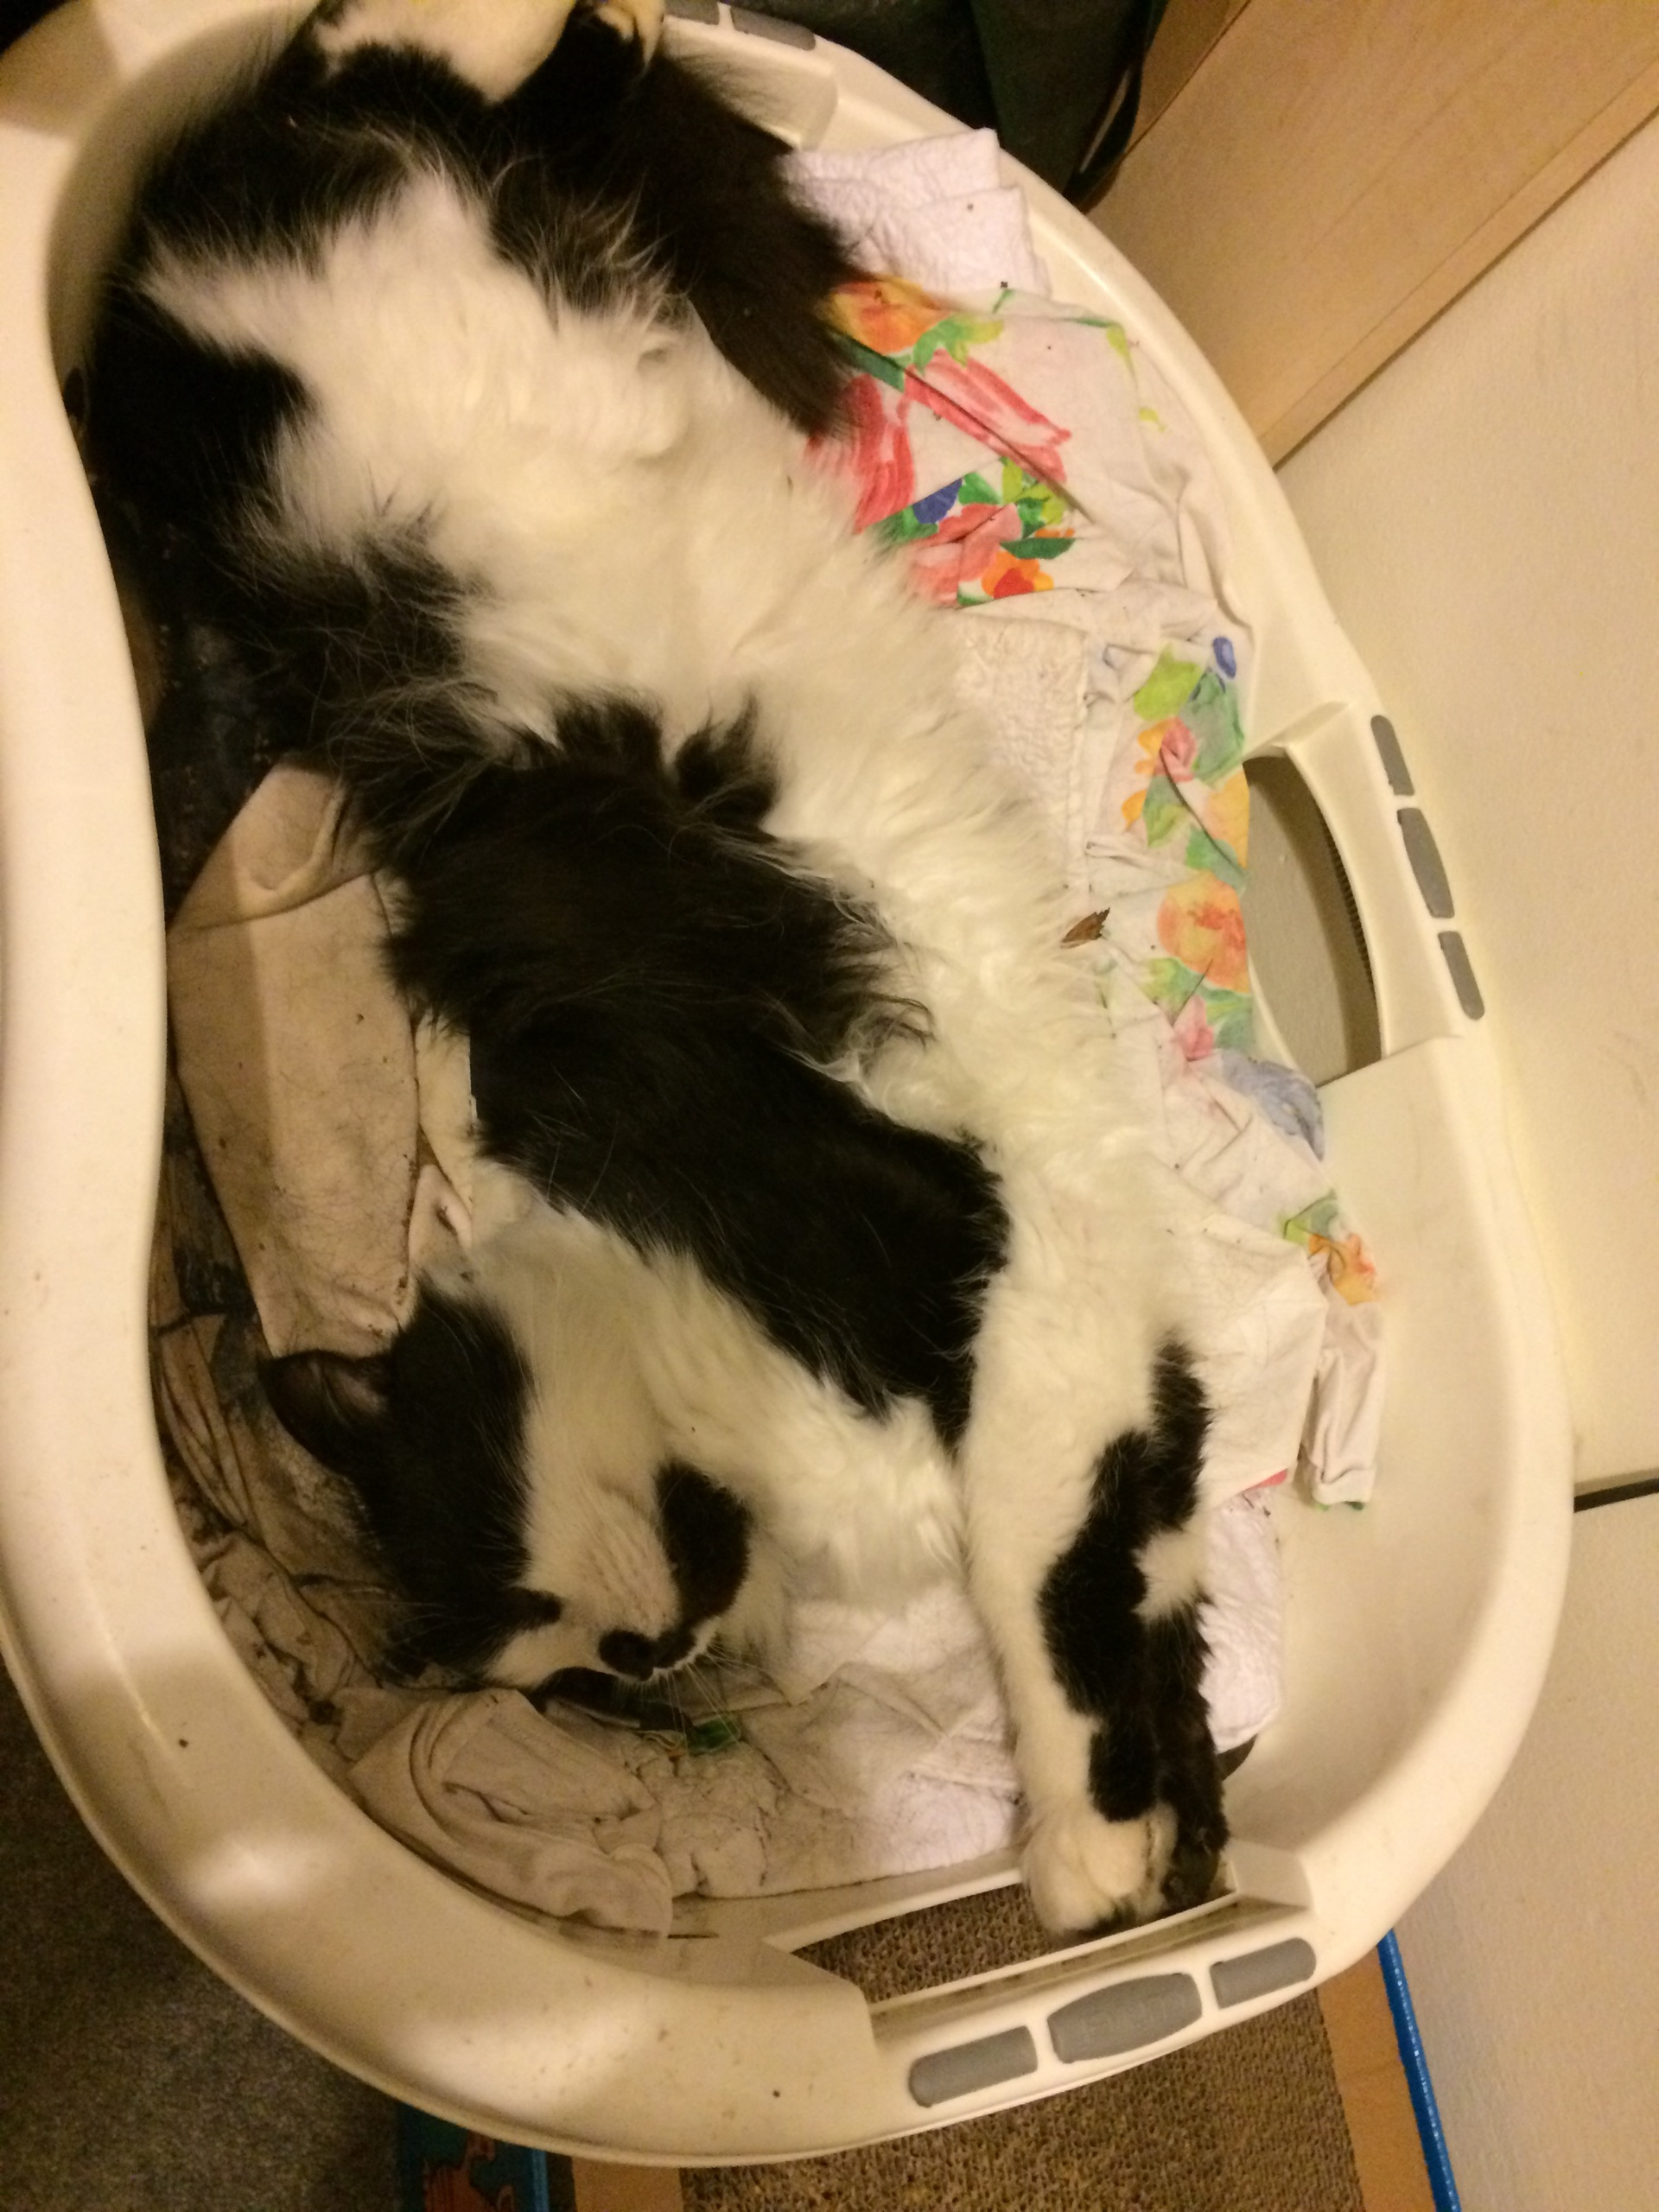 Mittens finds some fresh laundry – Oct 2014